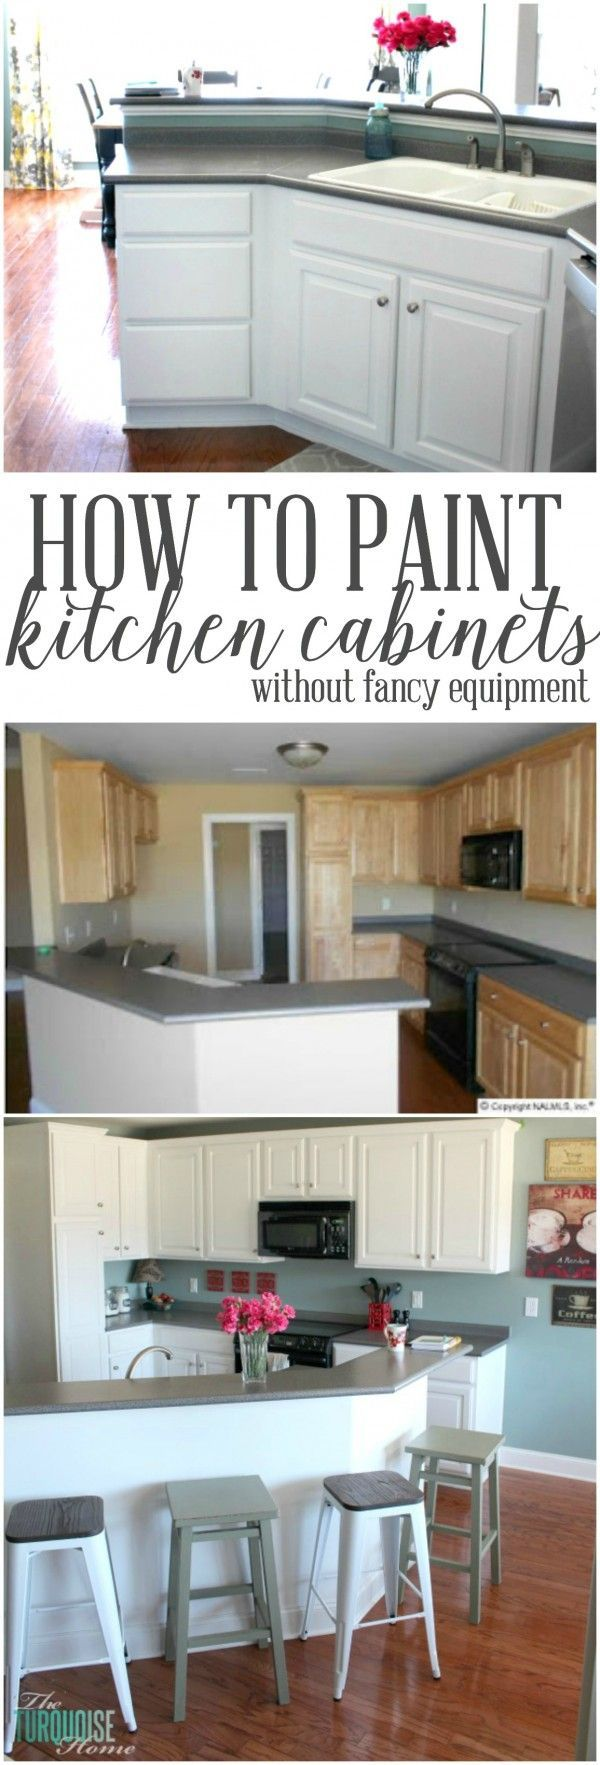 How to Paint Kitchen Cabinets without Fancy